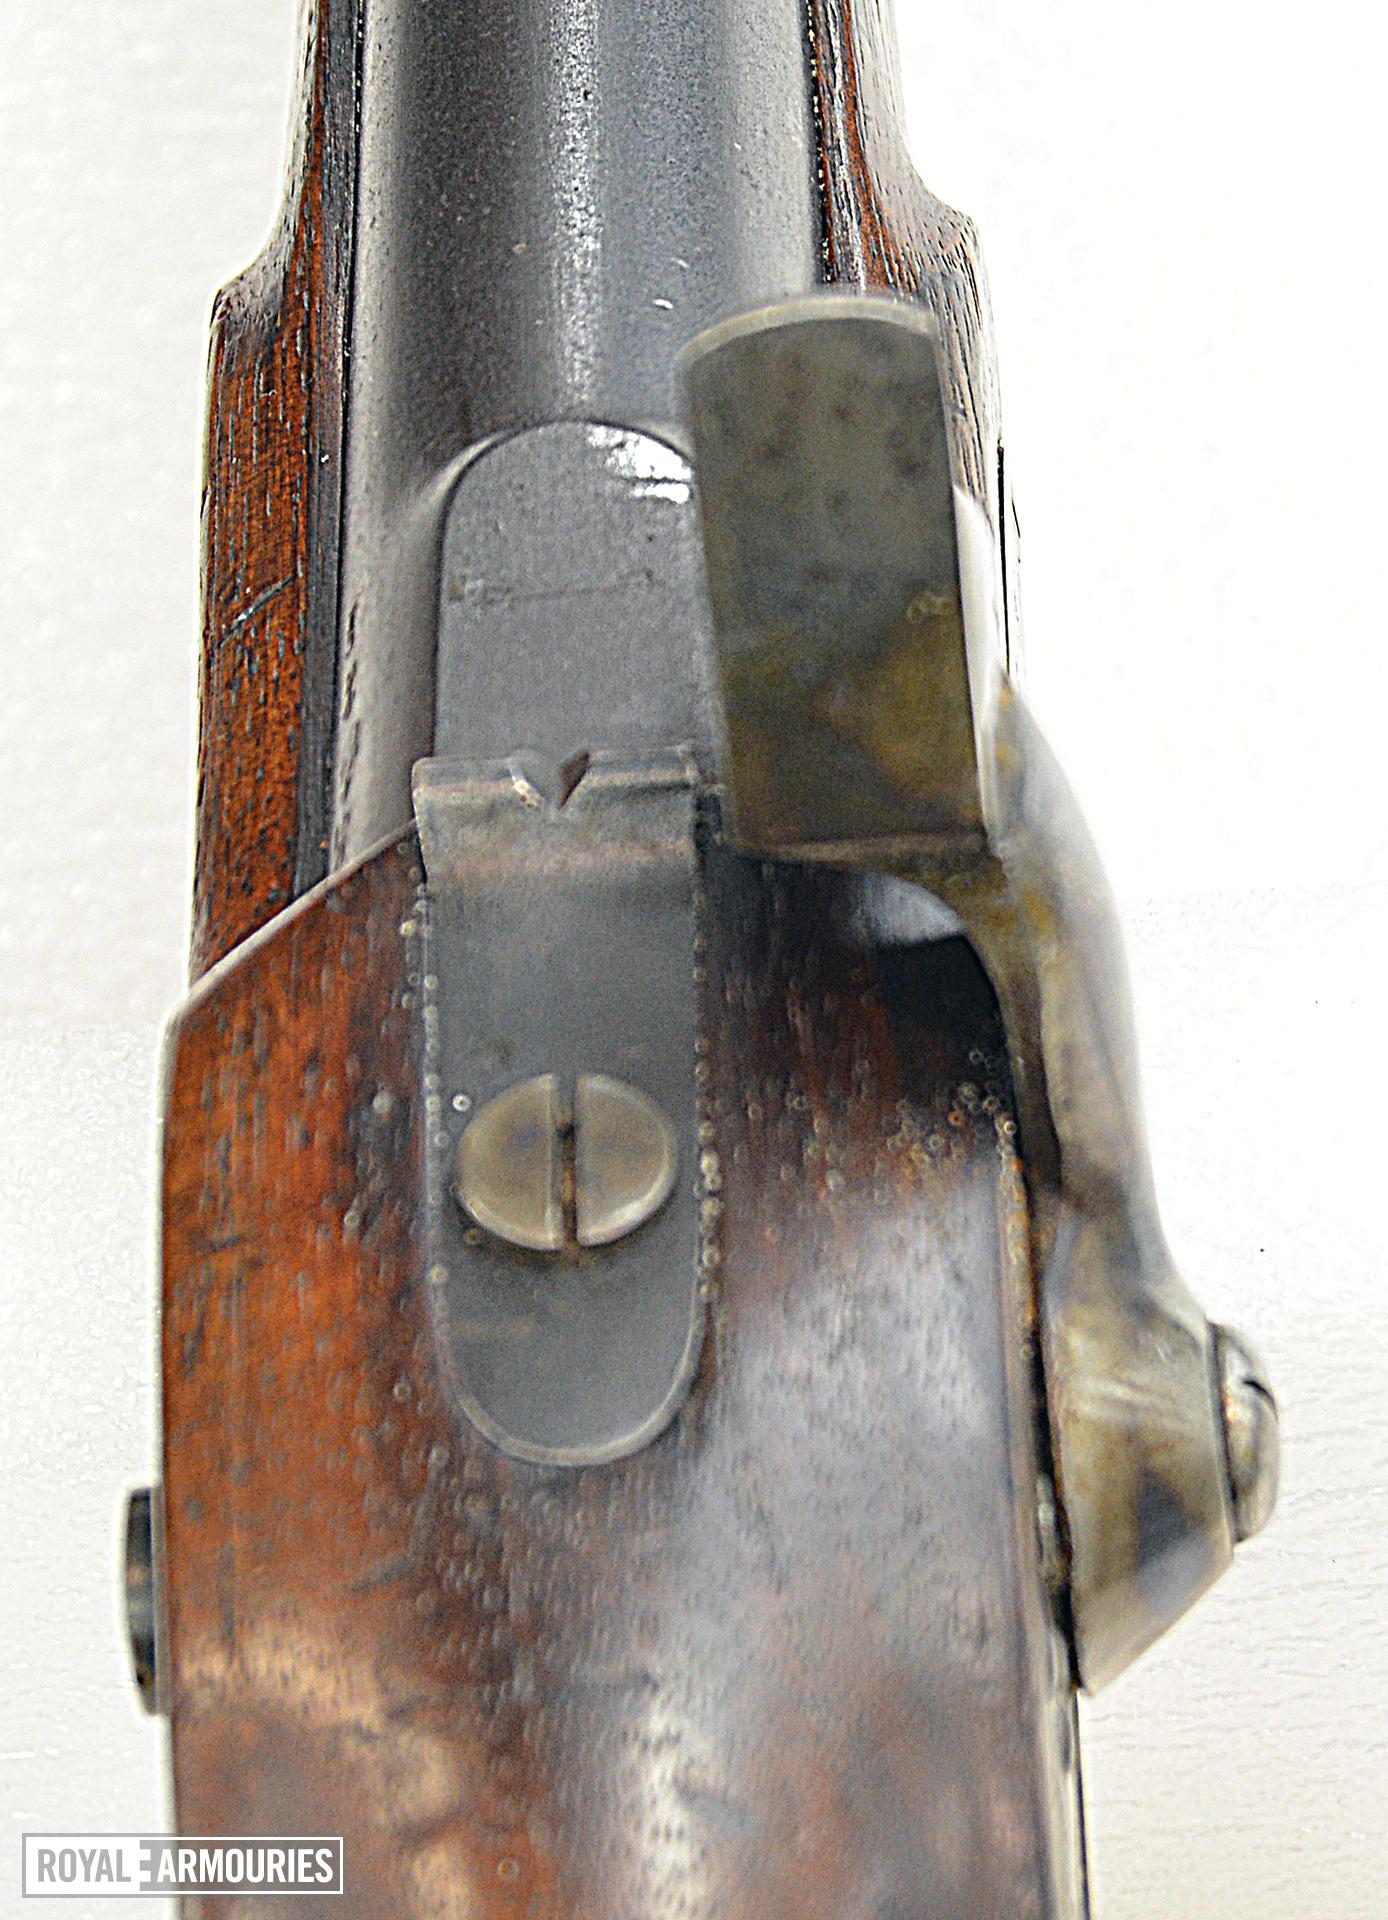 Percussion pistol. Enfield Cavalry India Pattern. Smooth Bore. Calibre .656 inch. Shown is non-adjustable rear sight PR.10511